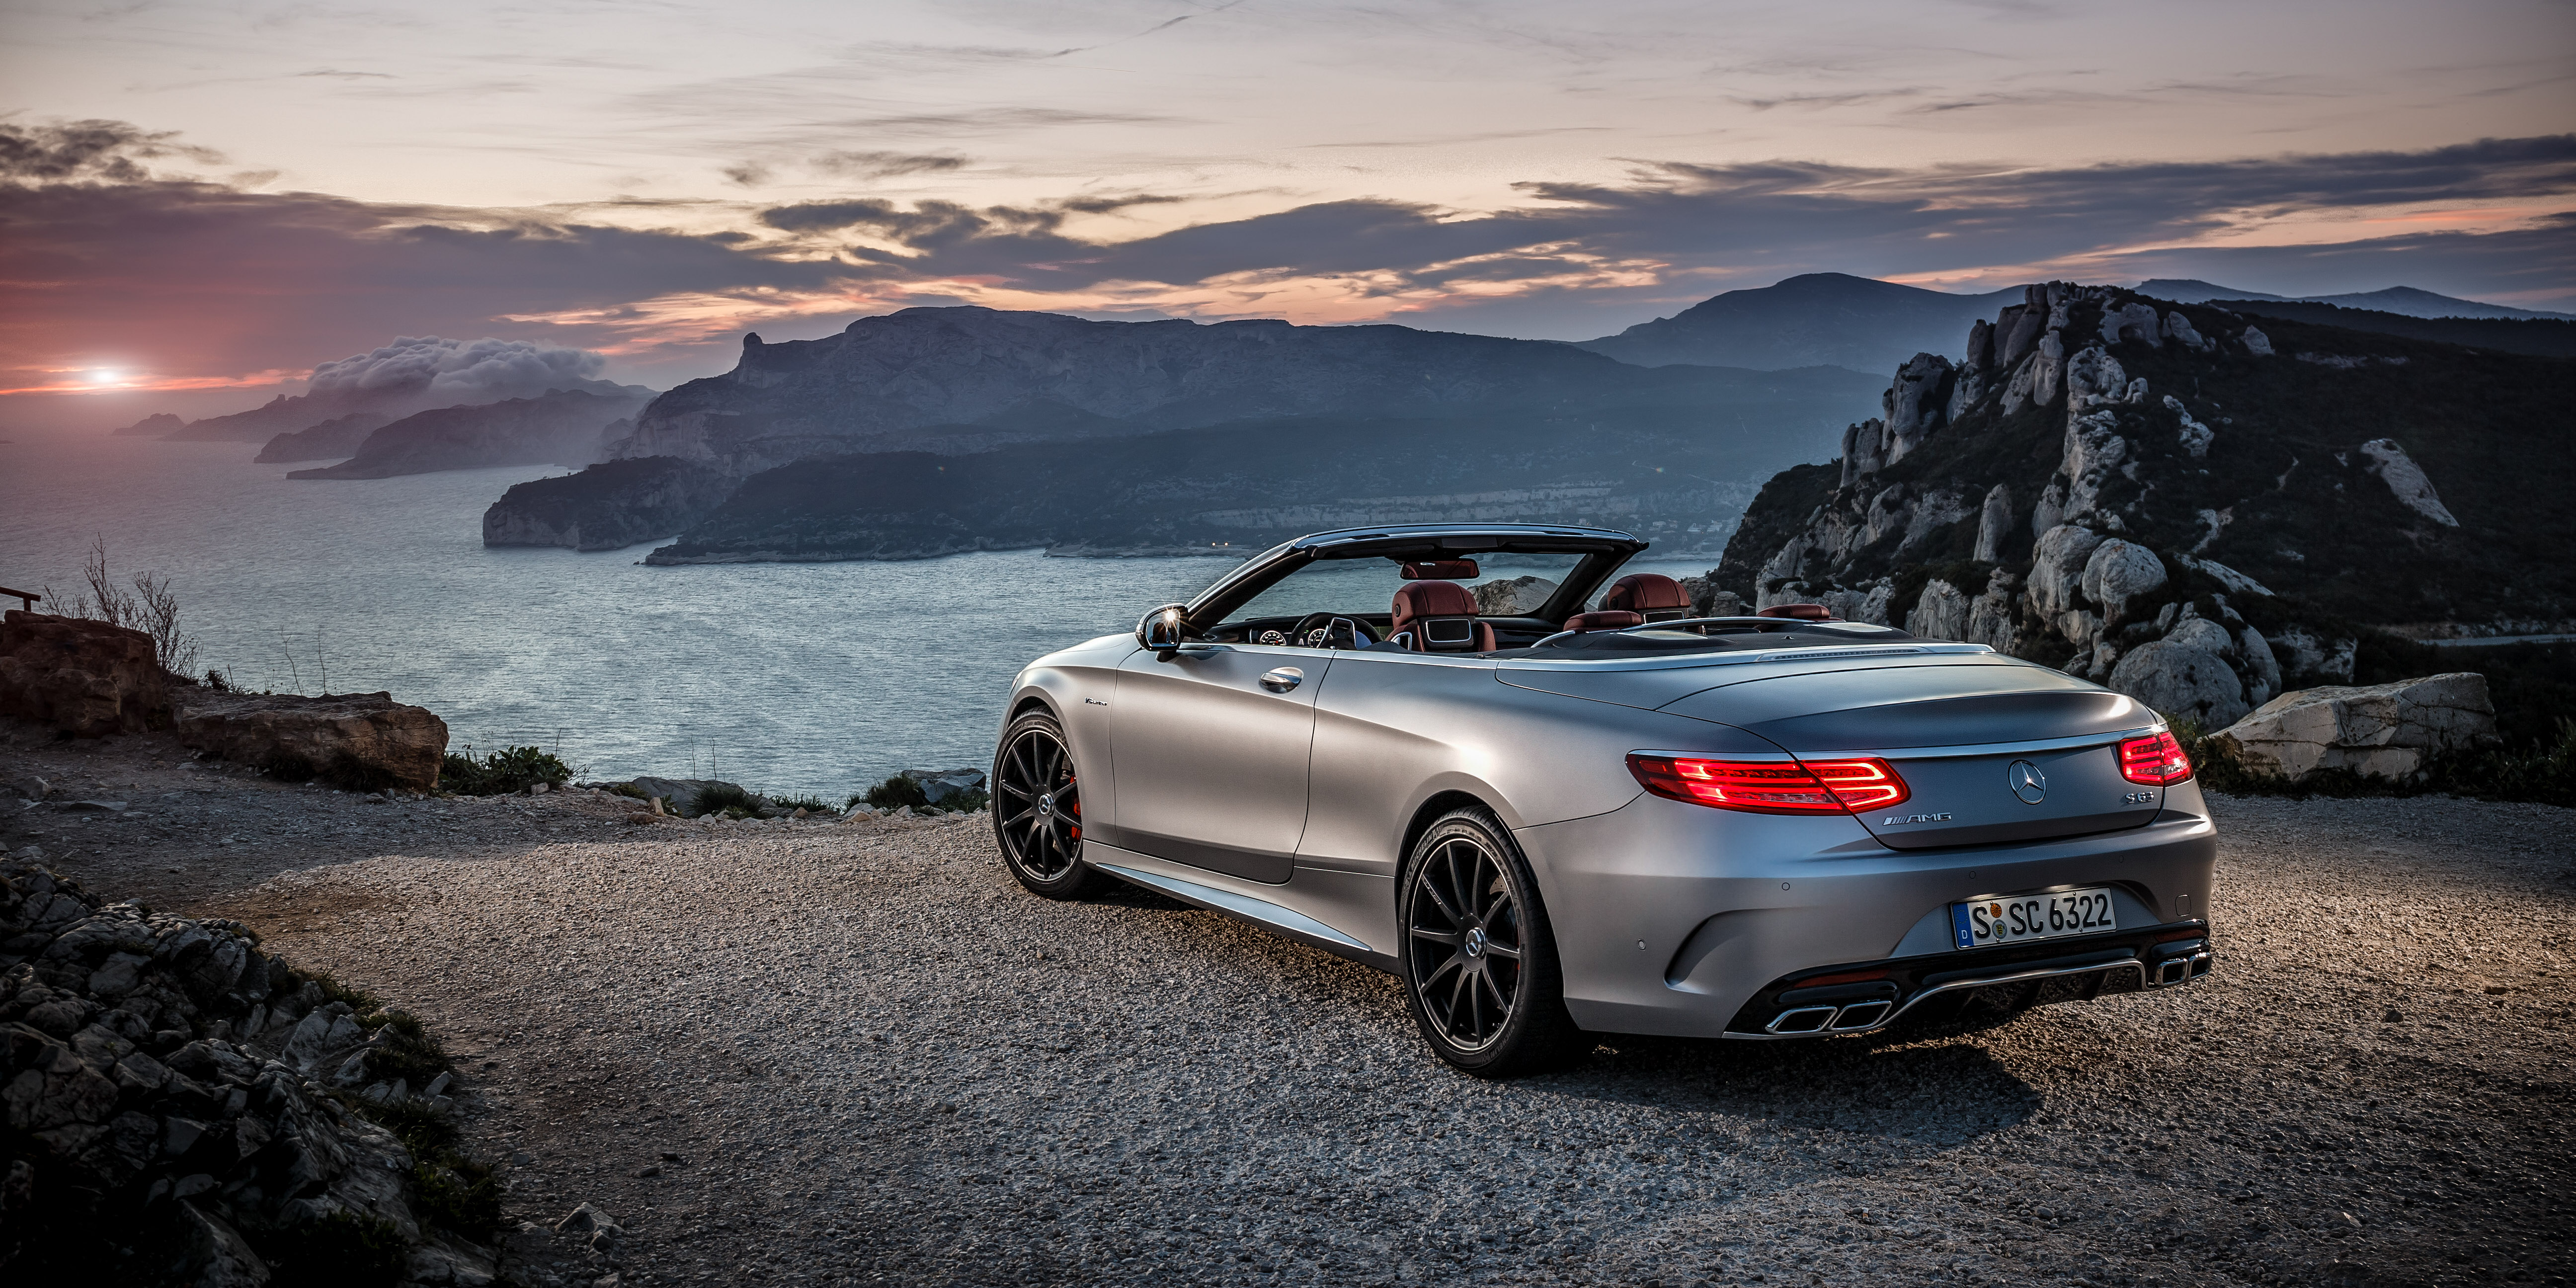 2016 mercedes benz s class cabriolet review s500 and amg s63 photos caradvice. Black Bedroom Furniture Sets. Home Design Ideas